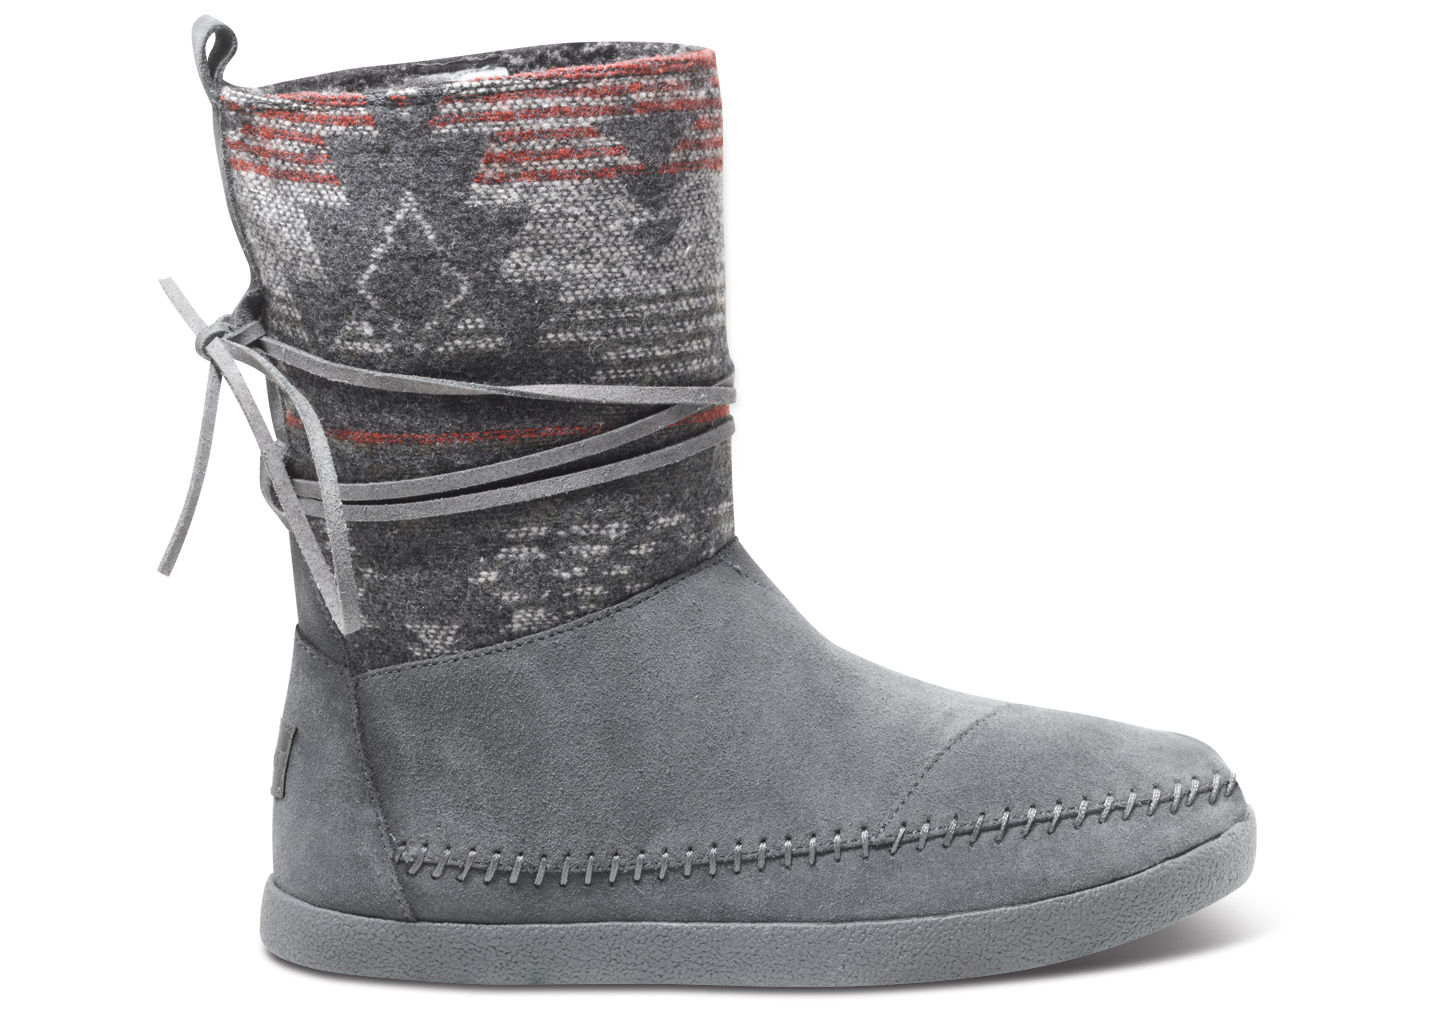 7b961e175 TOMS Grey Suede Jacquard Women's Nepal Boot in Gray - Lyst